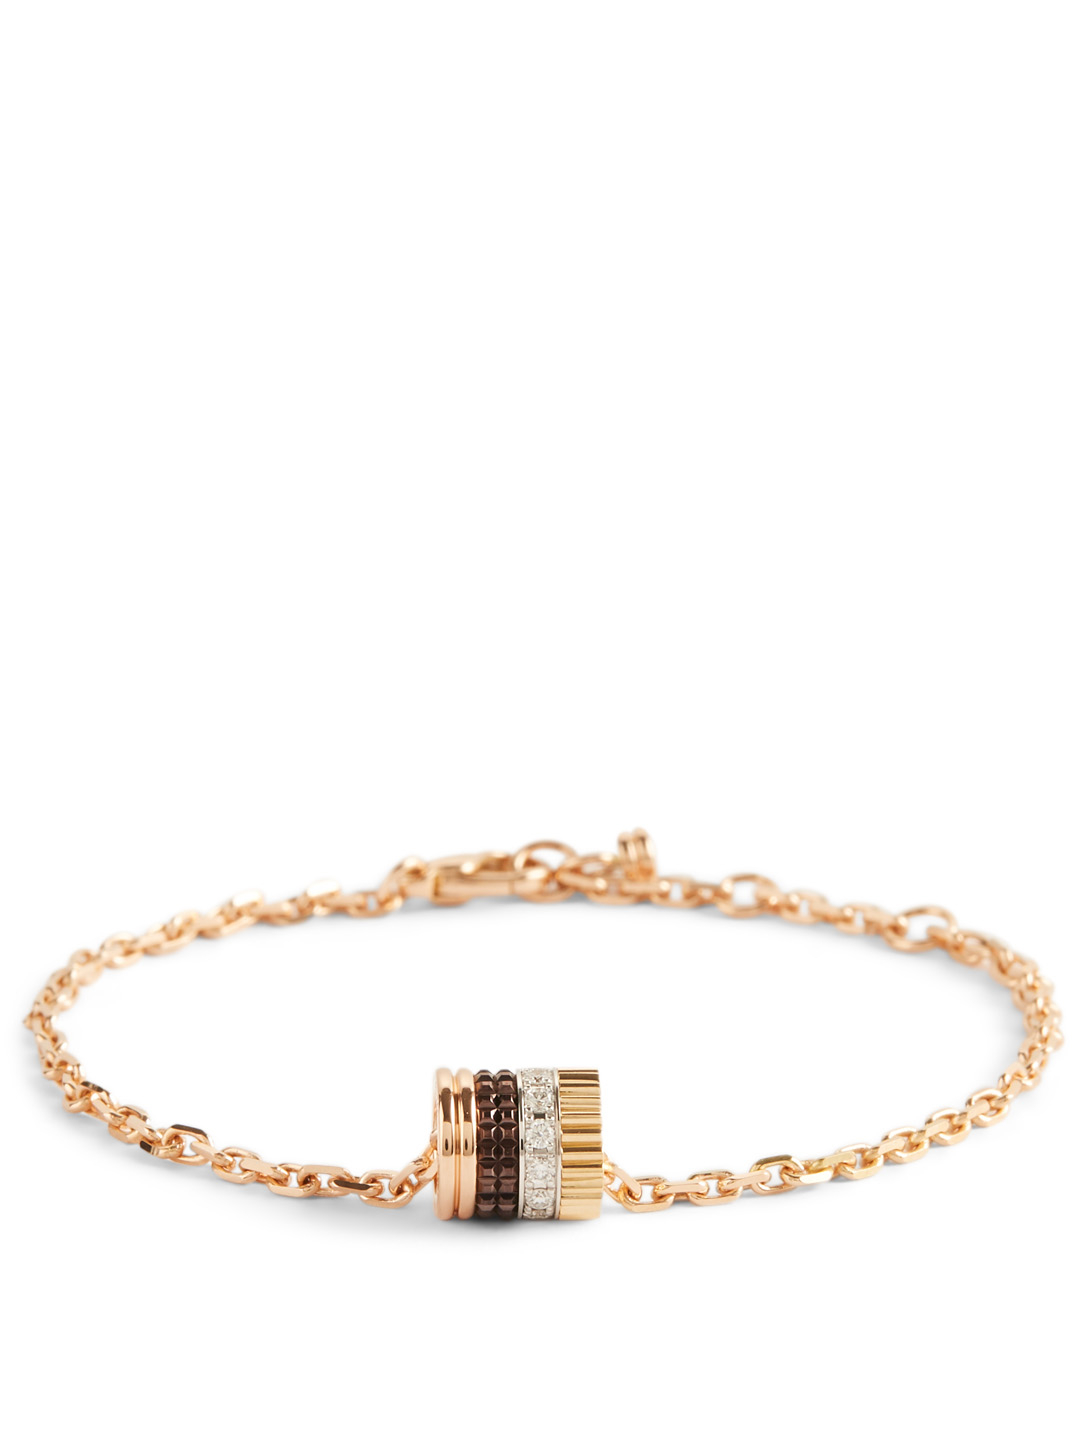 BOUCHERON Quatre Classique Gold Chain Bracelet With PVD And Diamonds Womens Metallic